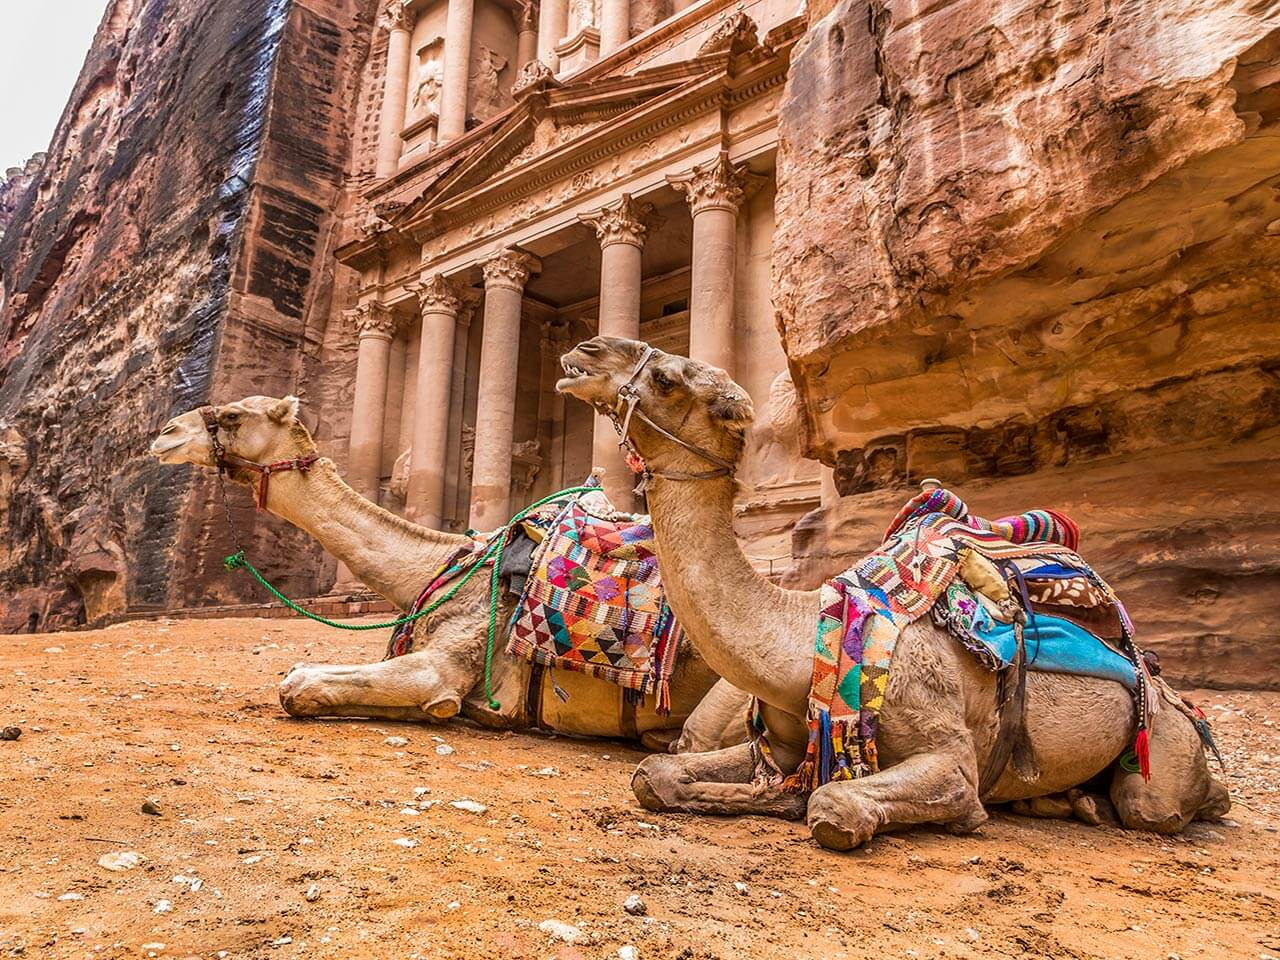 Jordan Journey - Travel Agency In Jordan